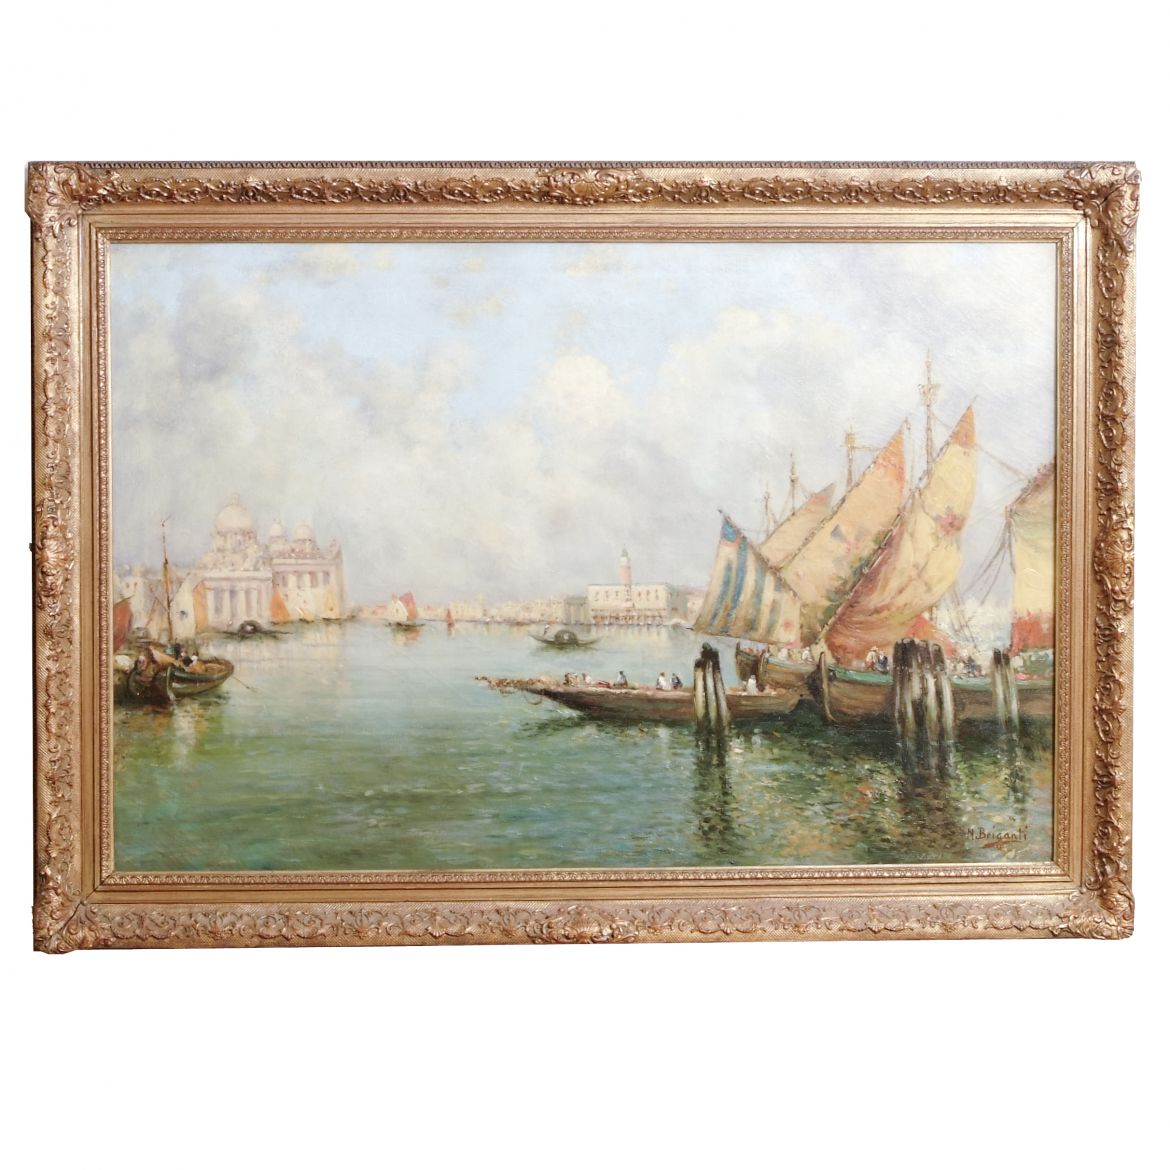 Nicholas Briganti Signed Oil on Canvas Of Venice